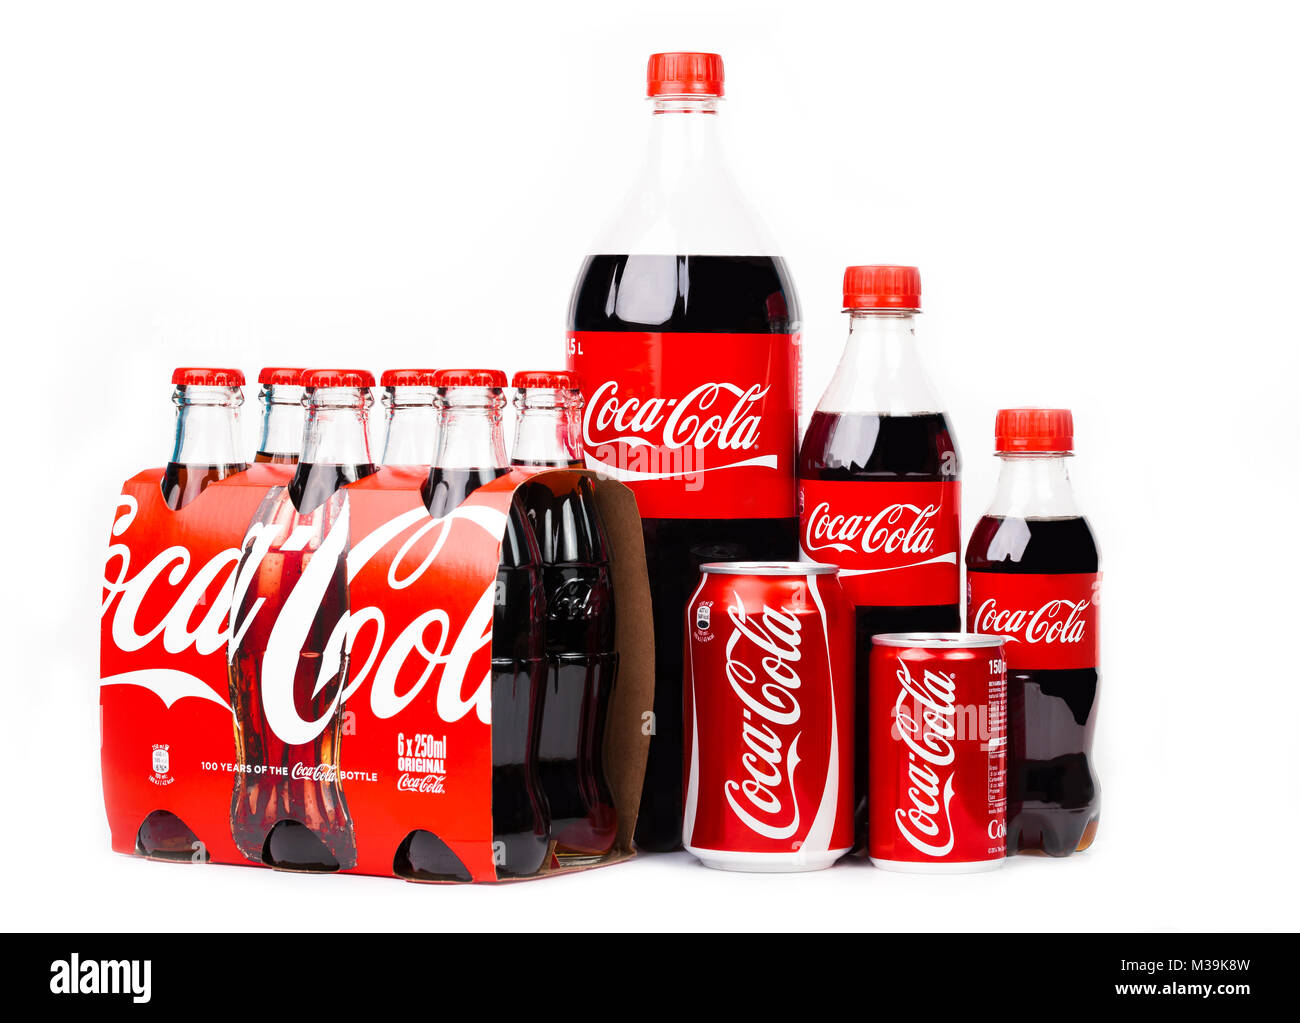 Coca Cola Logo Cut Out Stock Images Pictures Alamy Sprite Pet 15l Trieste Italy April 14 2016 A Group Of Products